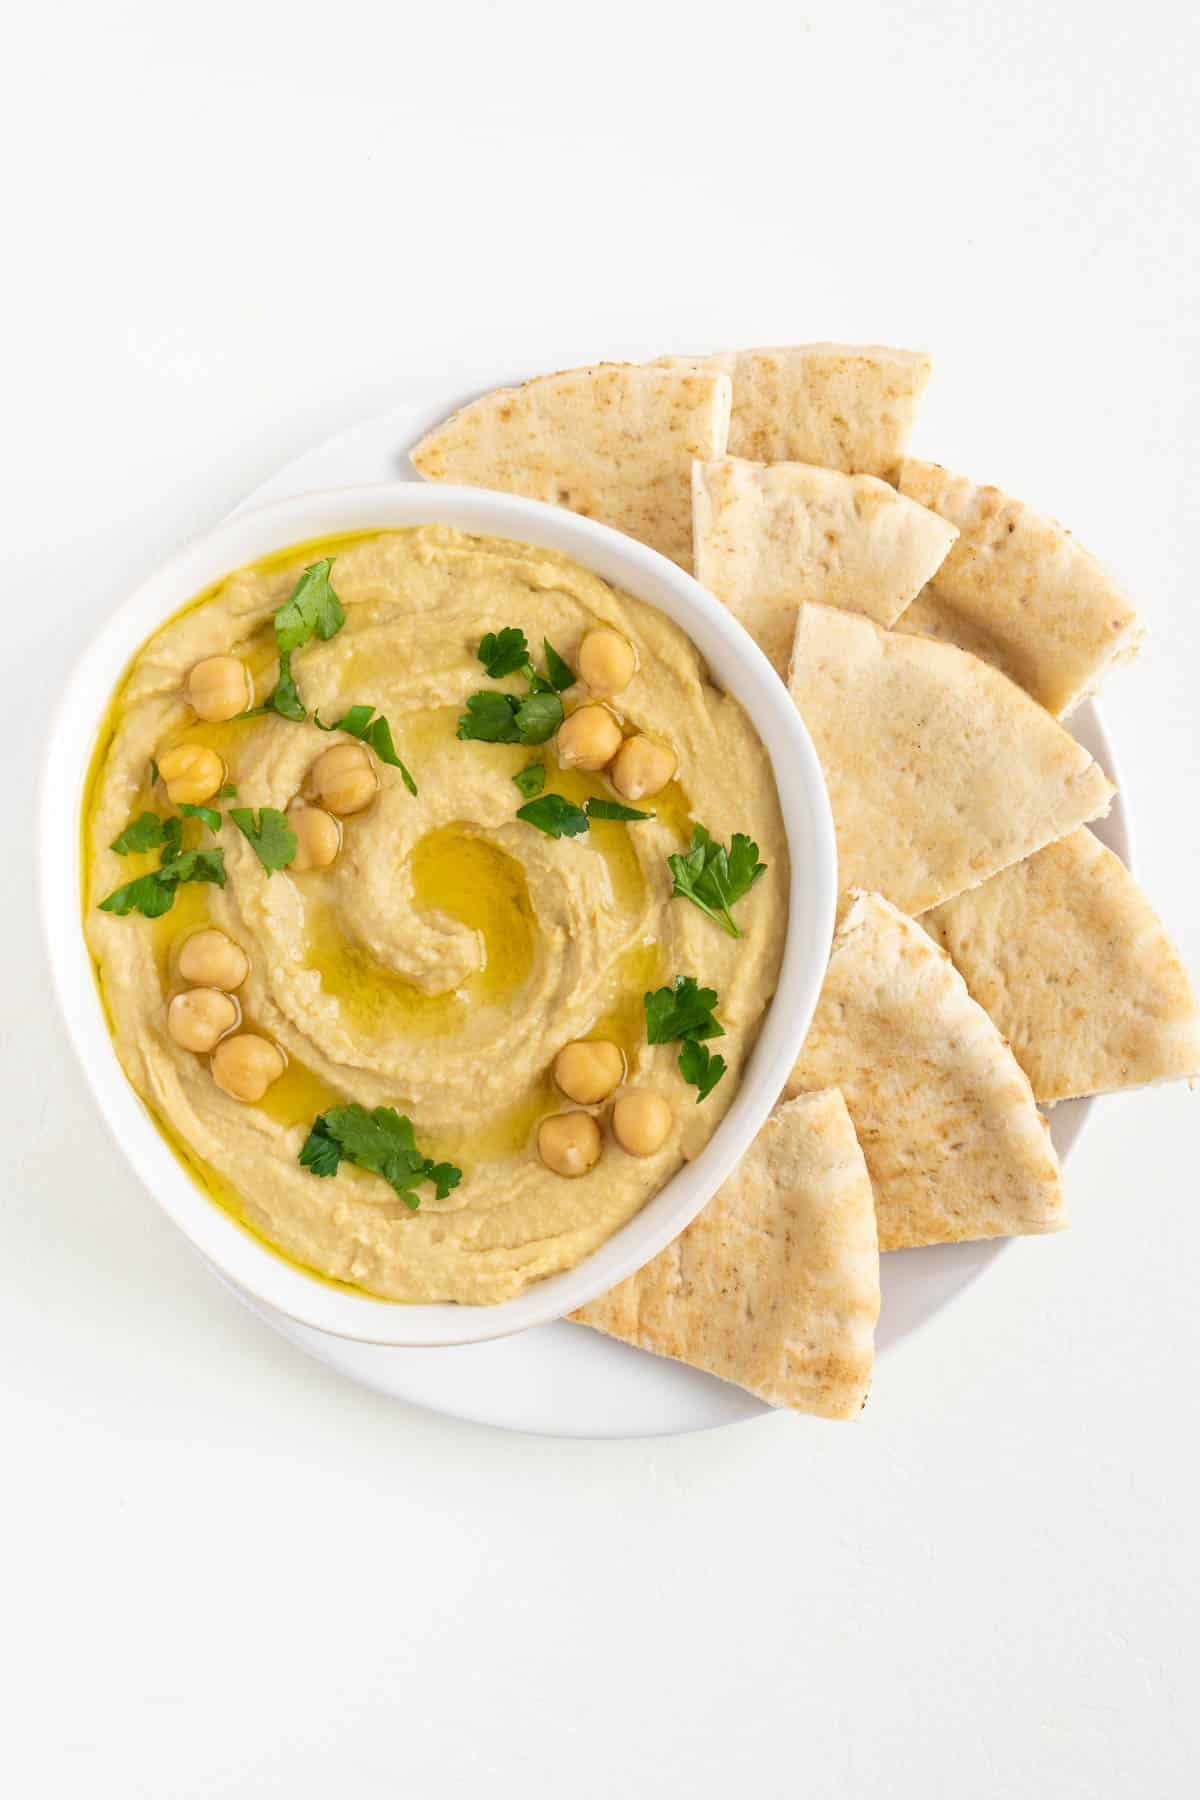 roasted garlic hummus surrounded by sliced pita bread